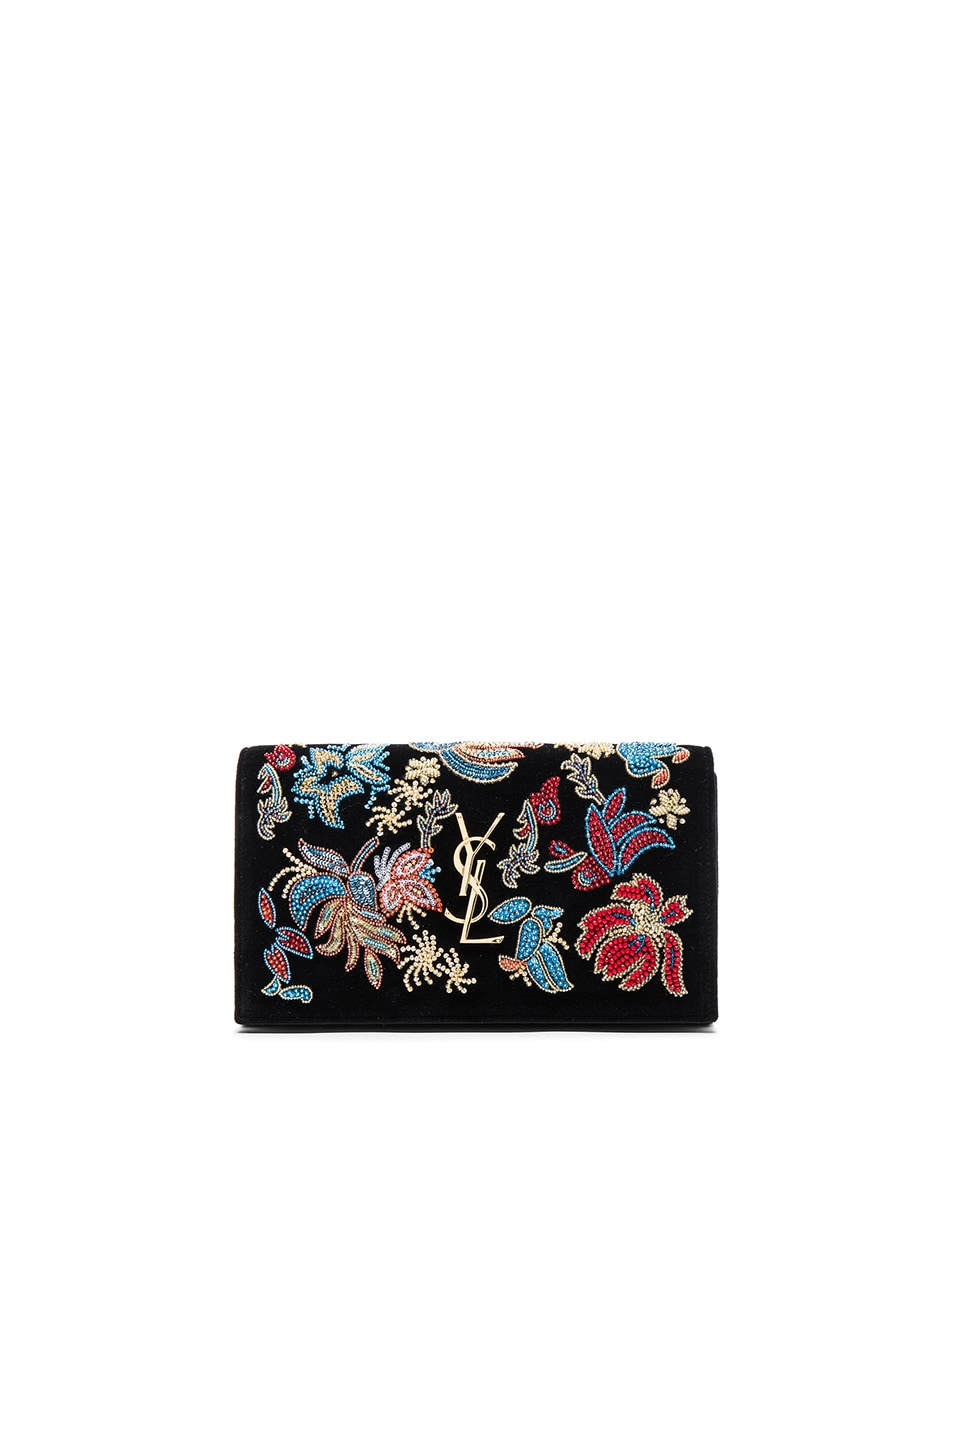 Image 1 of Saint Laurent Glam Rock Chain Wallet in Black Multi